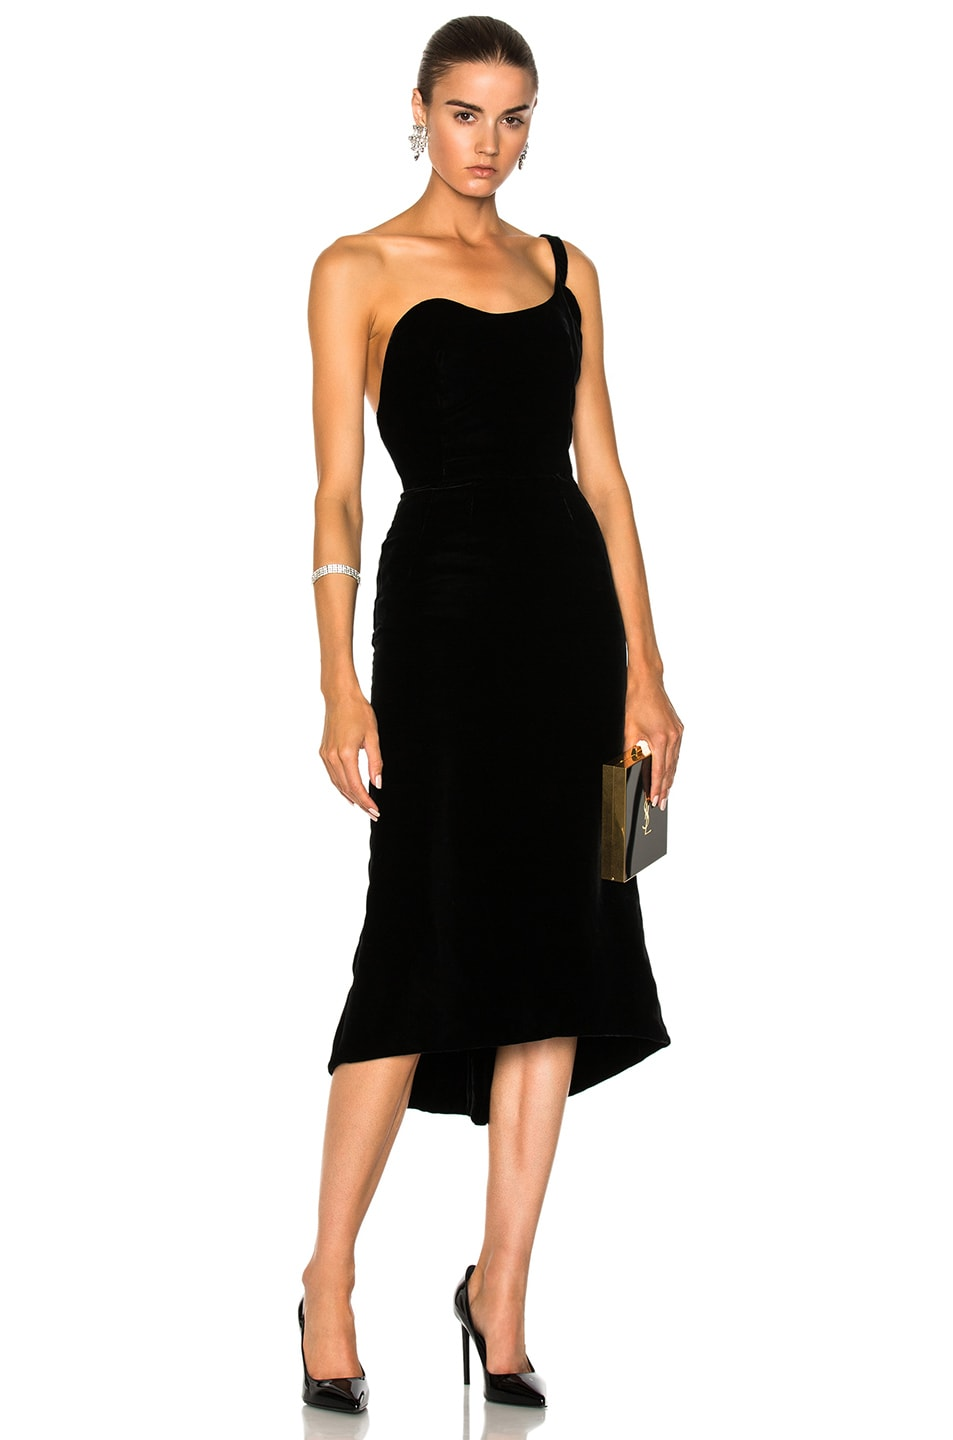 Oscar de la Renta Velvet Midi Dress Limited Edition Cheap Online Cheap Price Low Shipping Fee Shop Offer Sale Online Clearance Best Store To Get BhyZfcLp